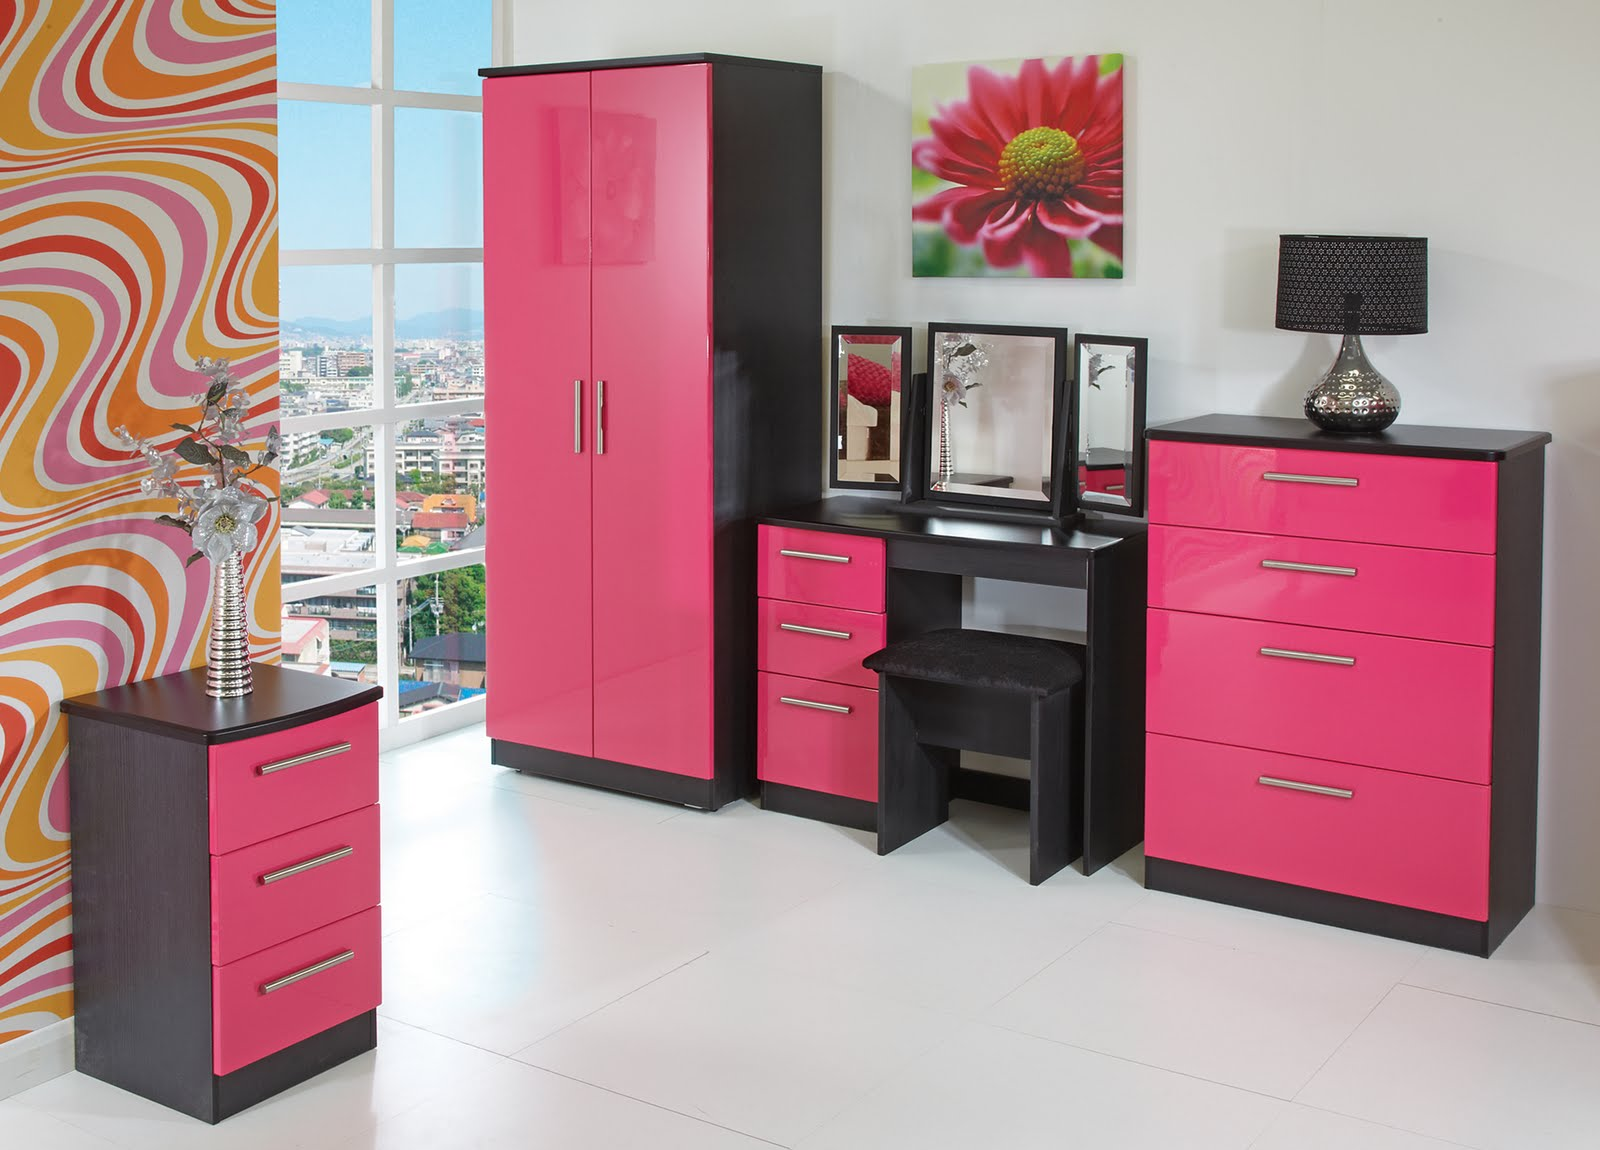 Home Furnishings From Furniture Store 247: Pink High Gloss